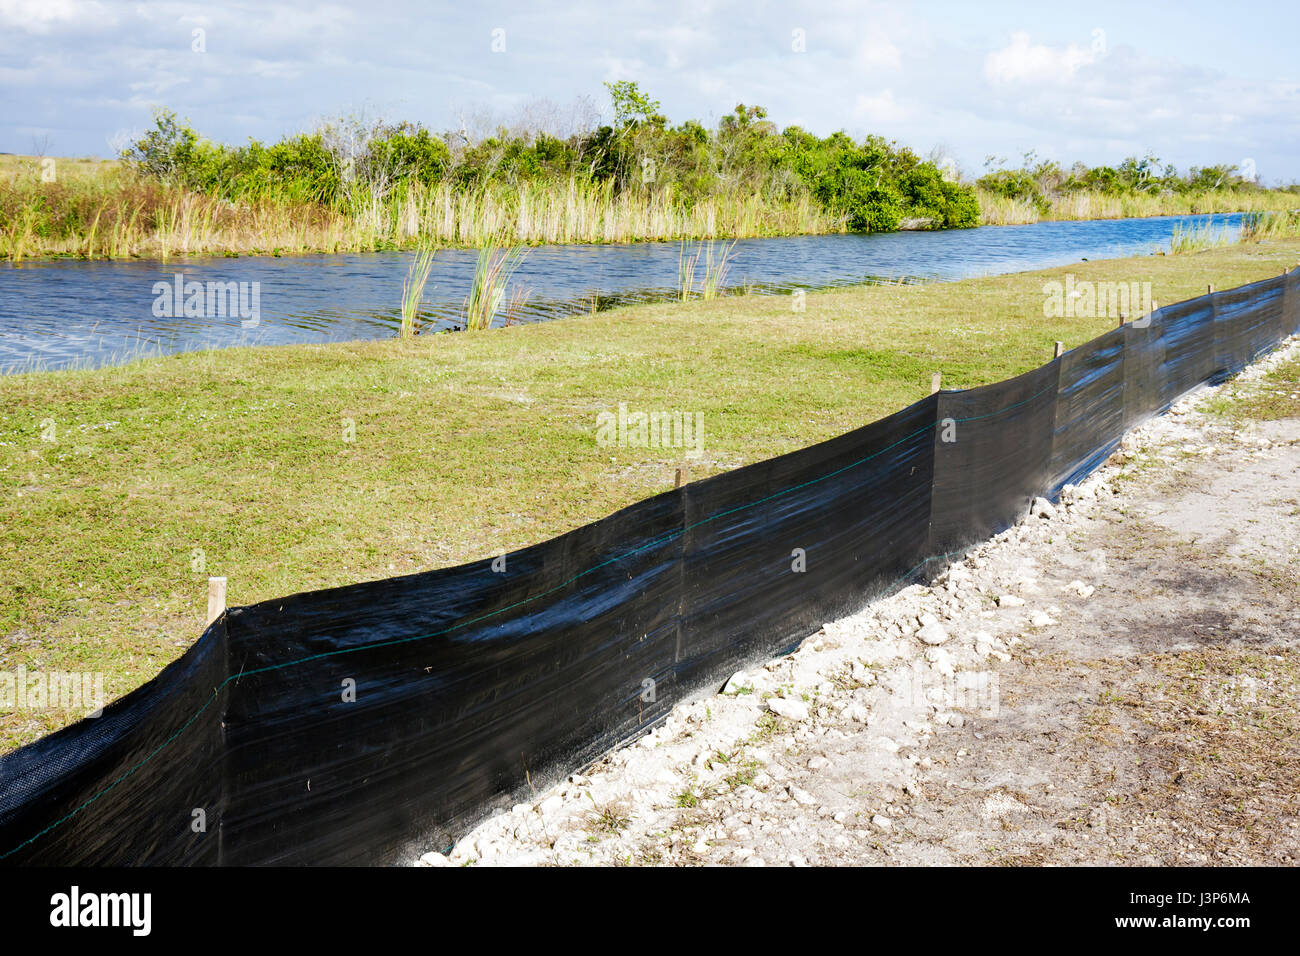 Florida The Everglades Tamiami Trail Shark River Slough construction dust barrier black plastic fence wetland canal Stock Photo